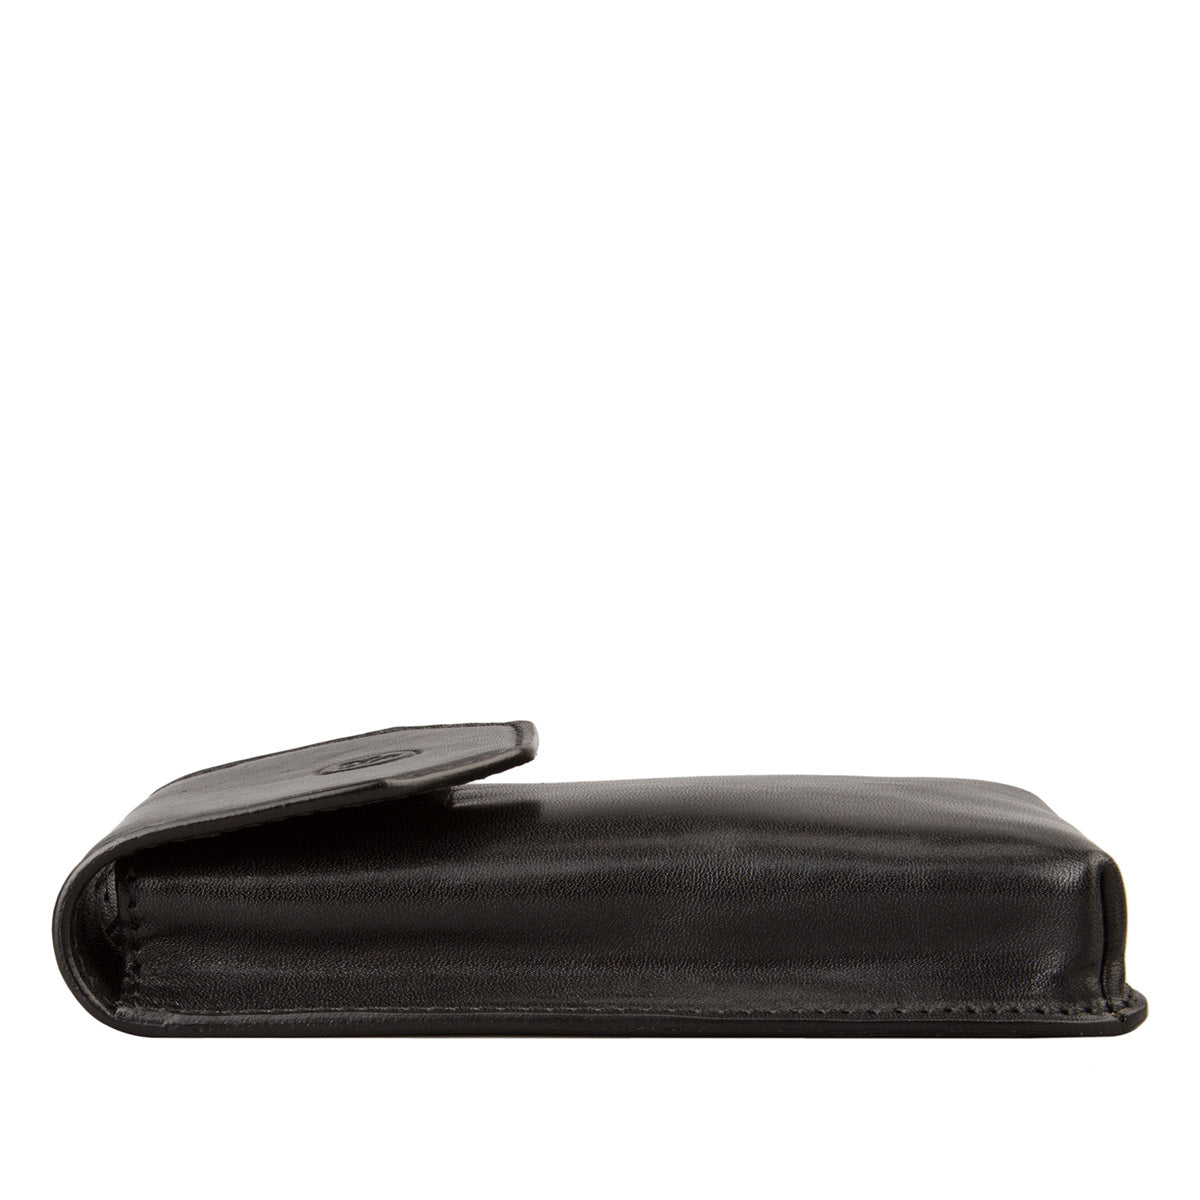 Image 3 of the 'Gabbro' Black Veg-Tanned Leather Glasses Case